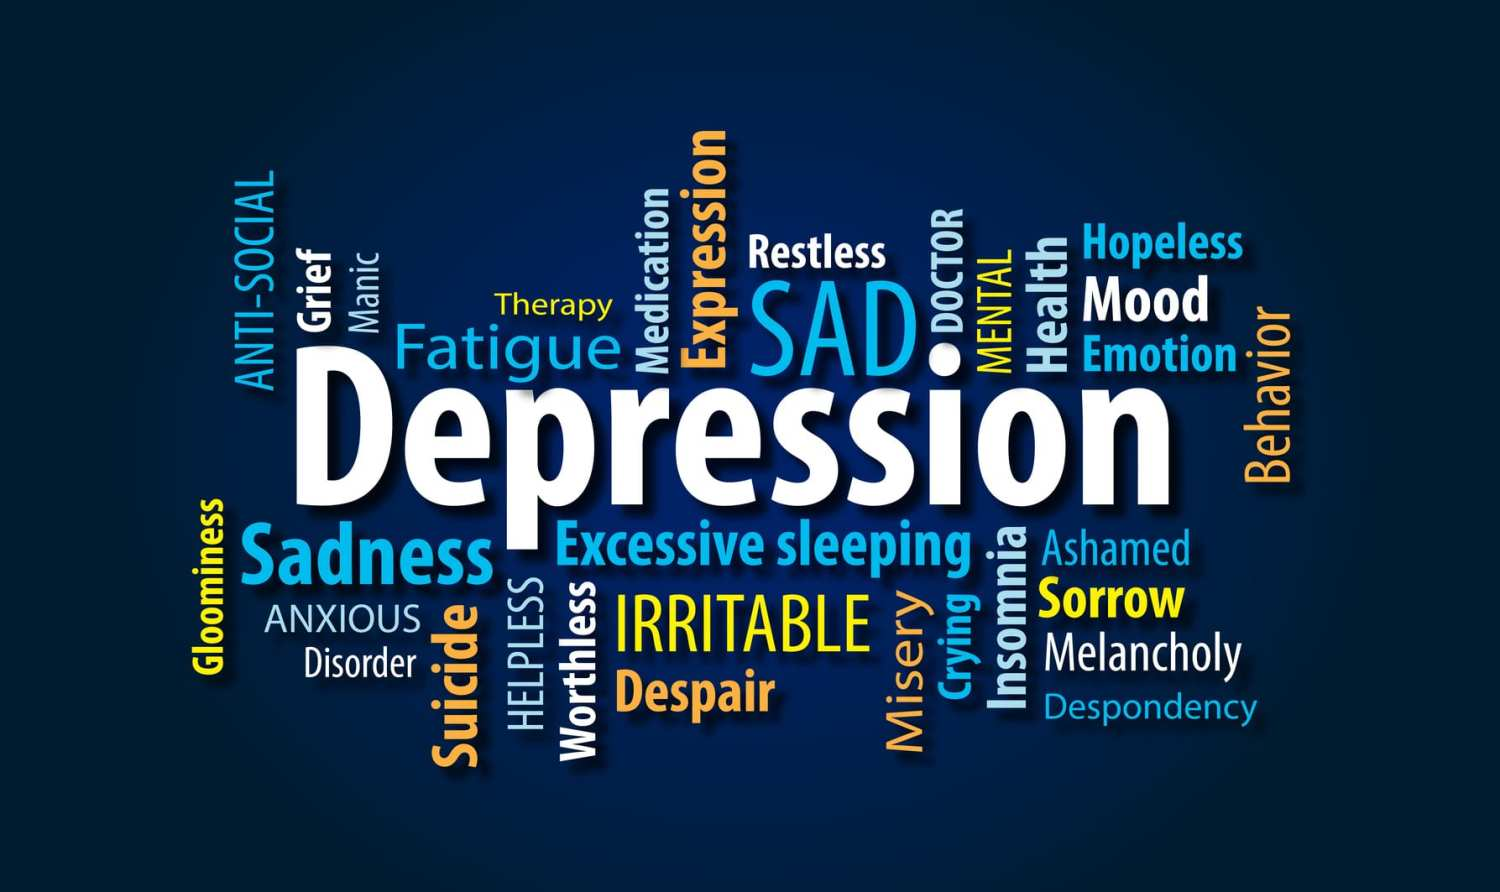 the vicious cycle of depression and chronic pain